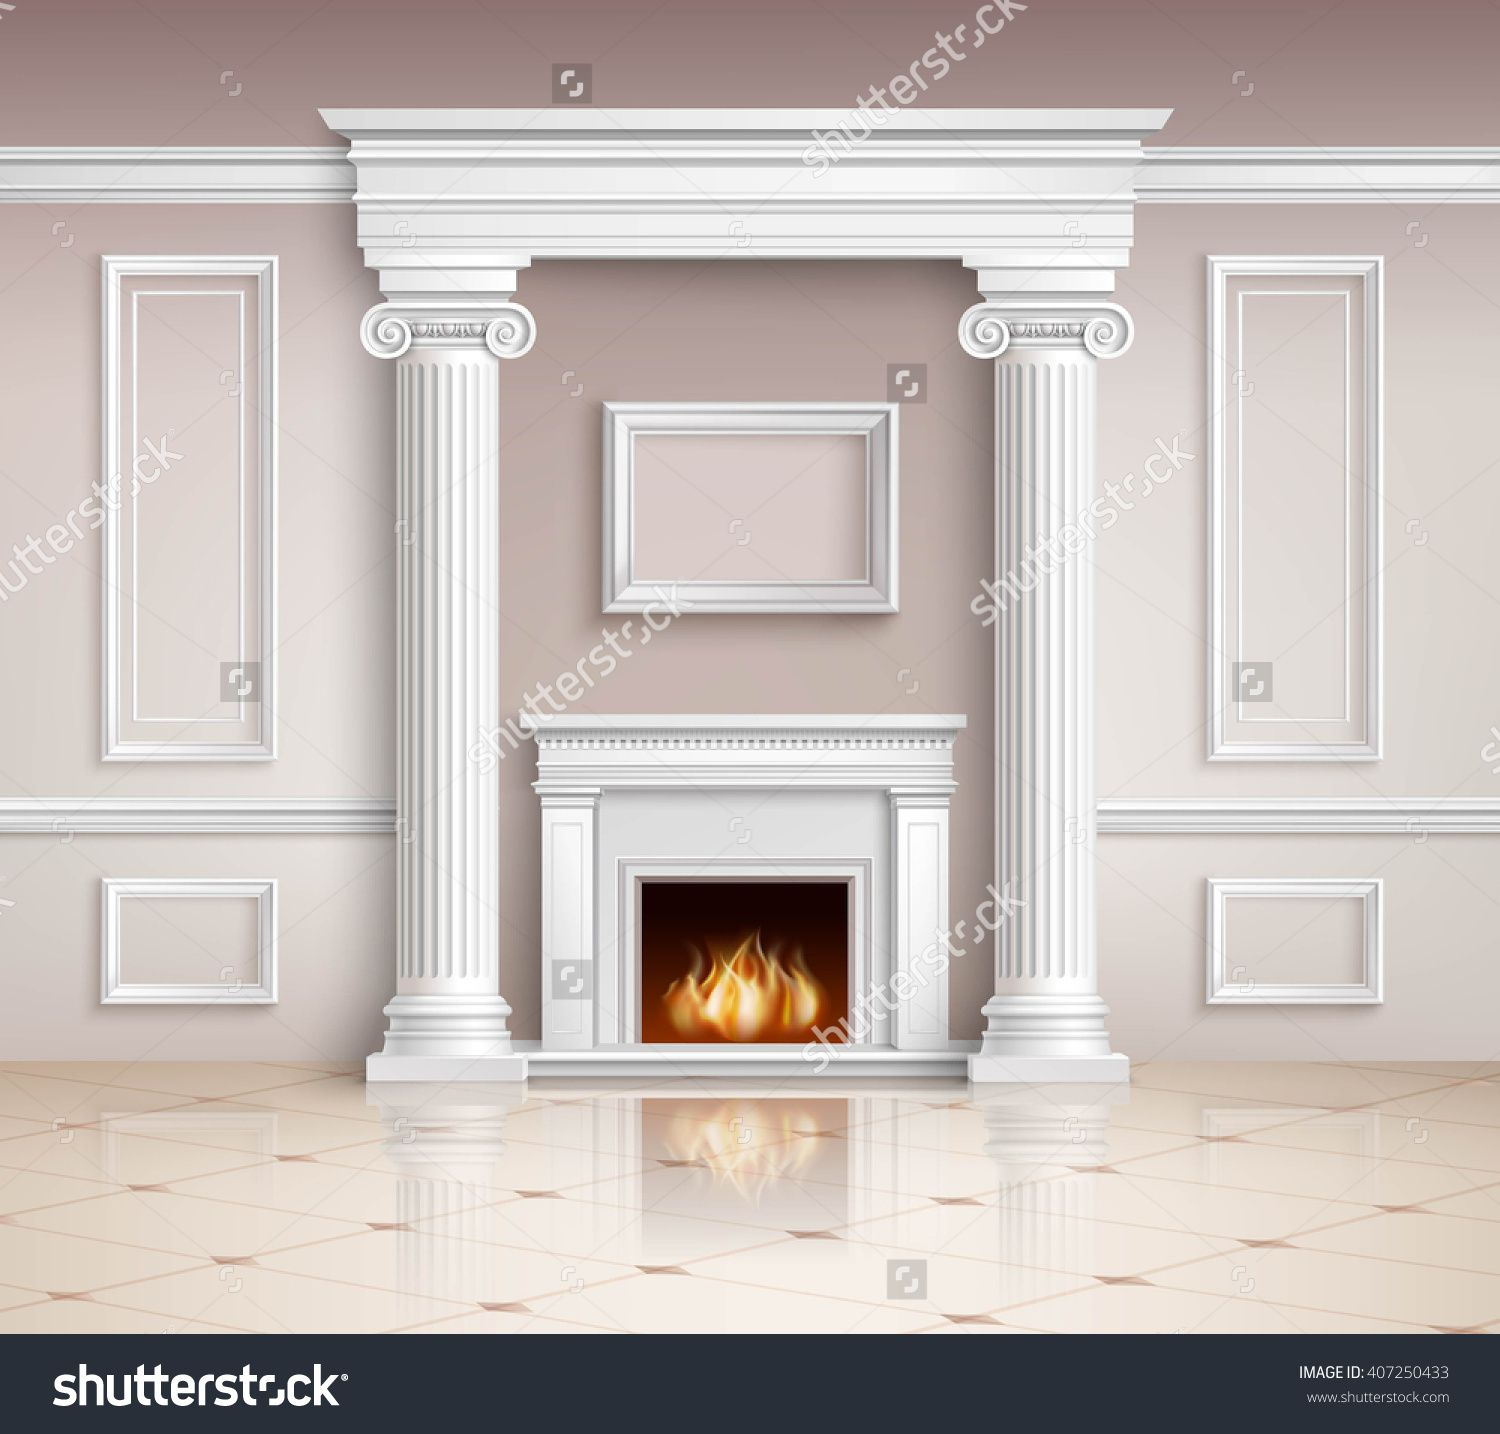 Realistic Classic Interior Room Design Background With Fireplace Vector Illustration